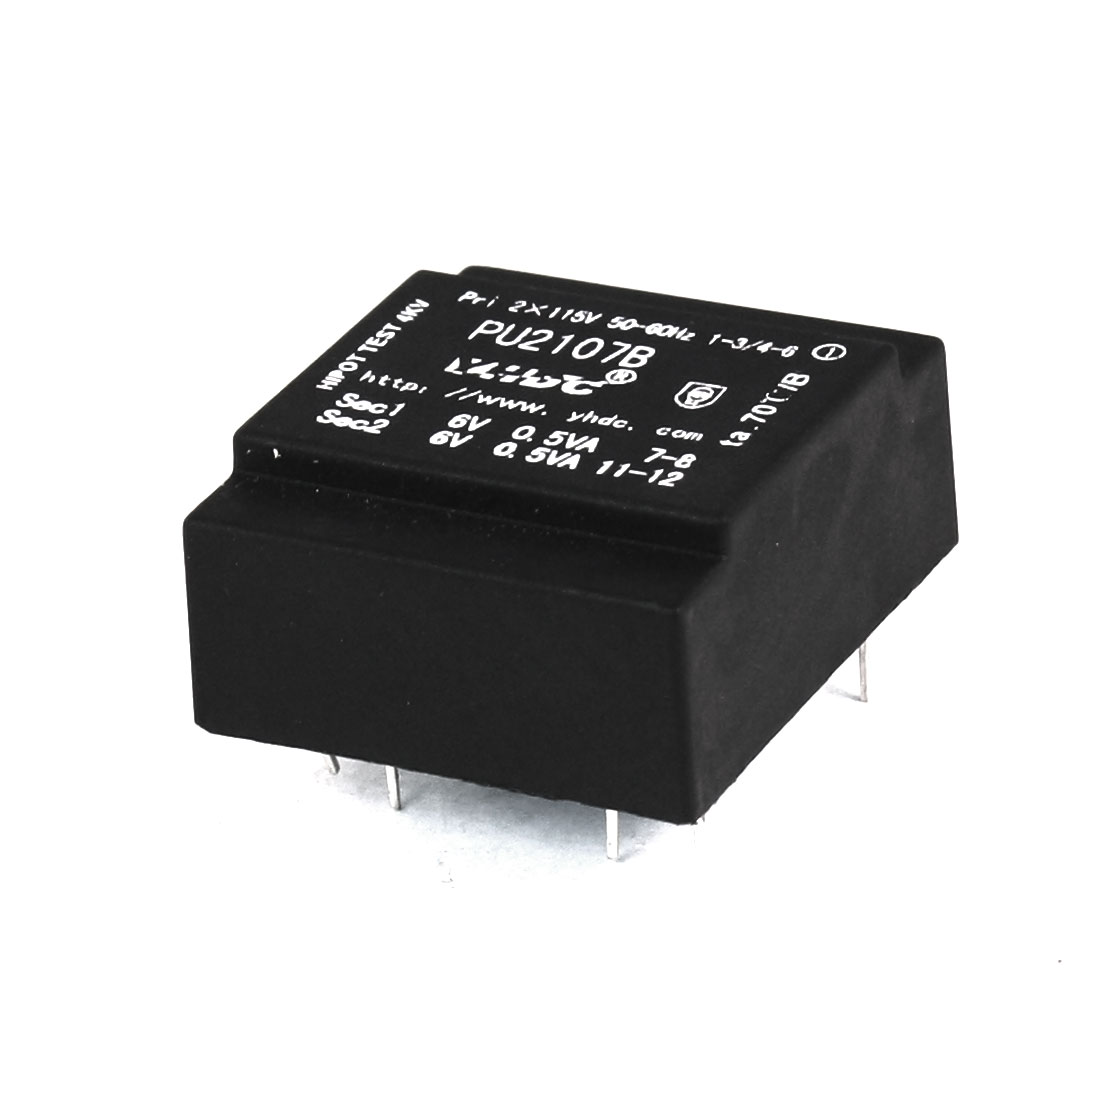 0.5VA 50/60 Hz Double Way 115V Input 6V Output 8 Pins Encapsulated Transformer